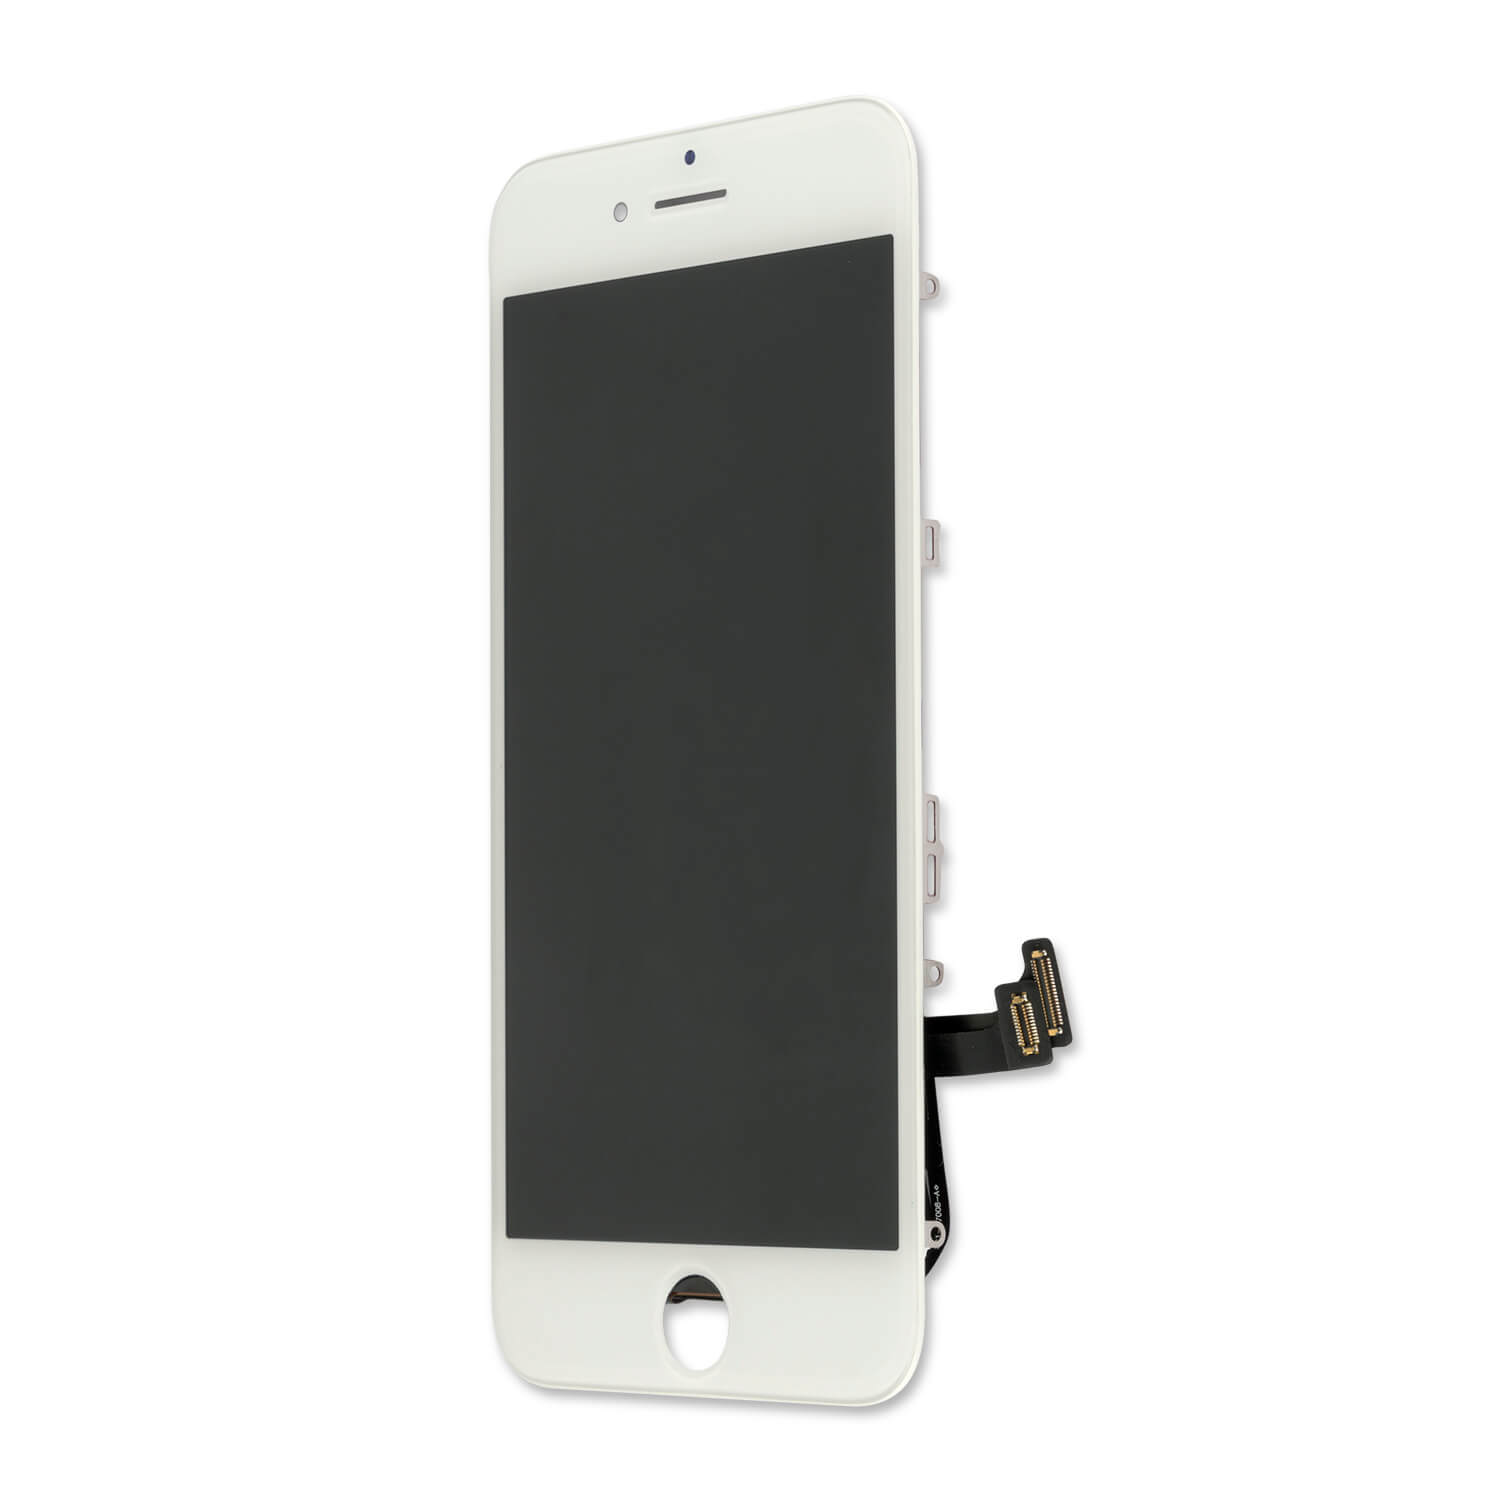 Apple Display Unit for iPhone 7 Plus (white) (reconditioned)